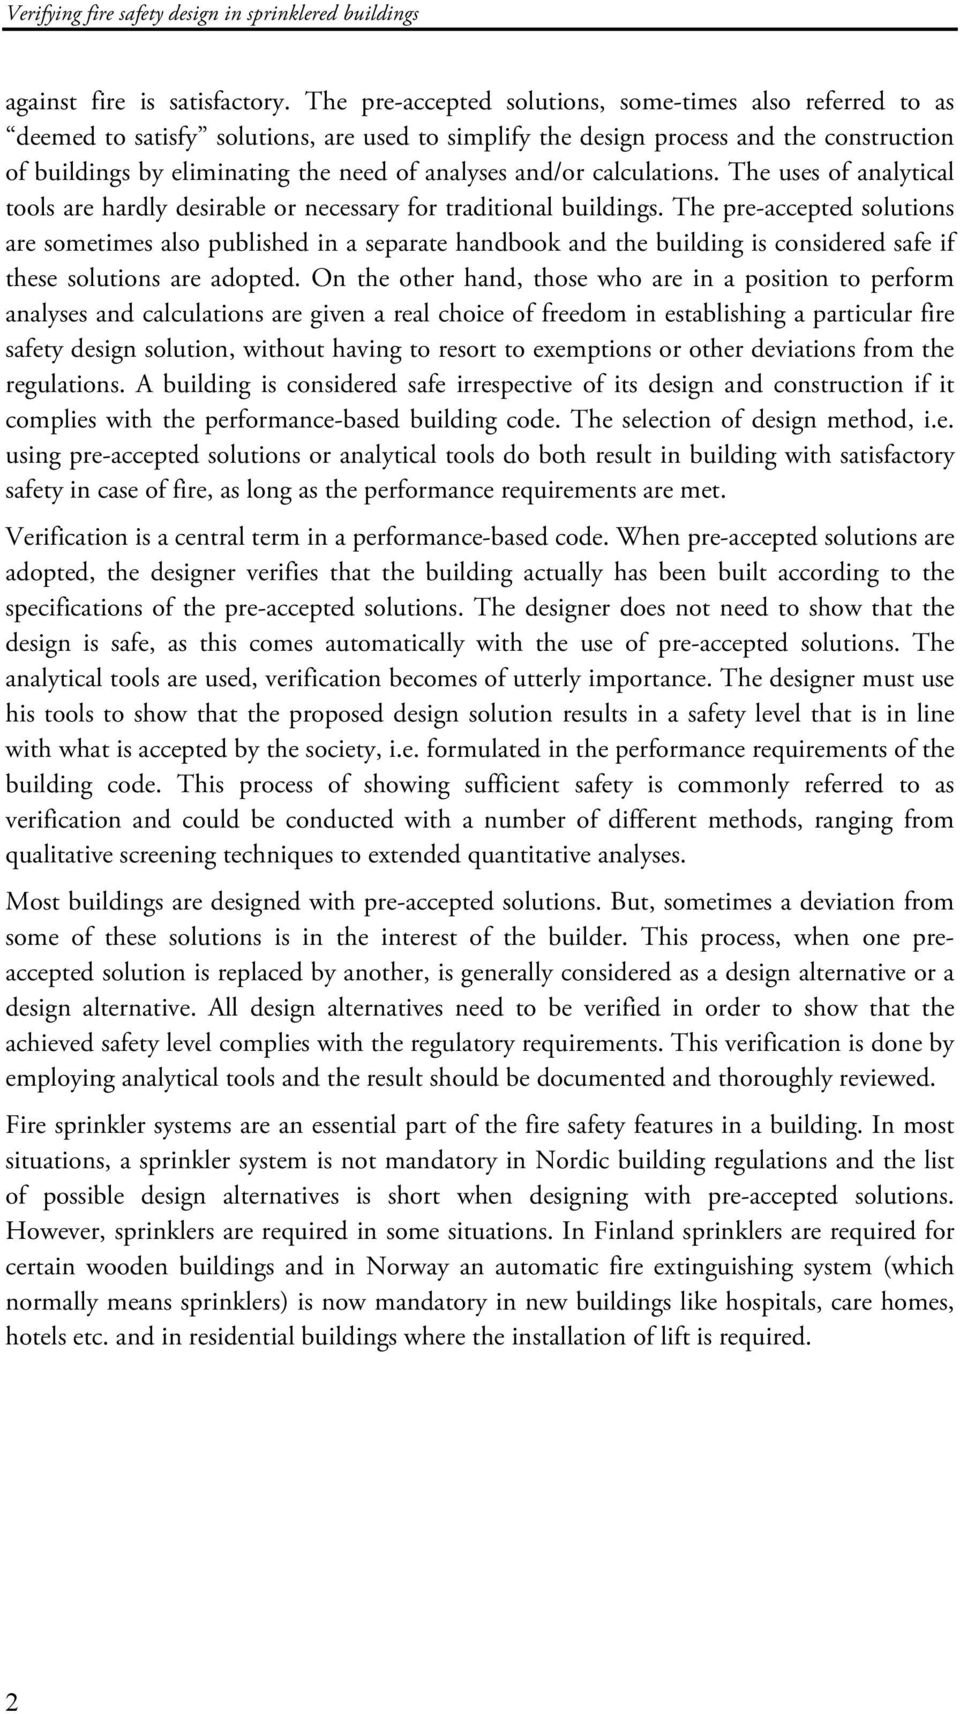 and/or calculations. The uses of analytical tools are hardly desirable or necessary for traditional buildings.